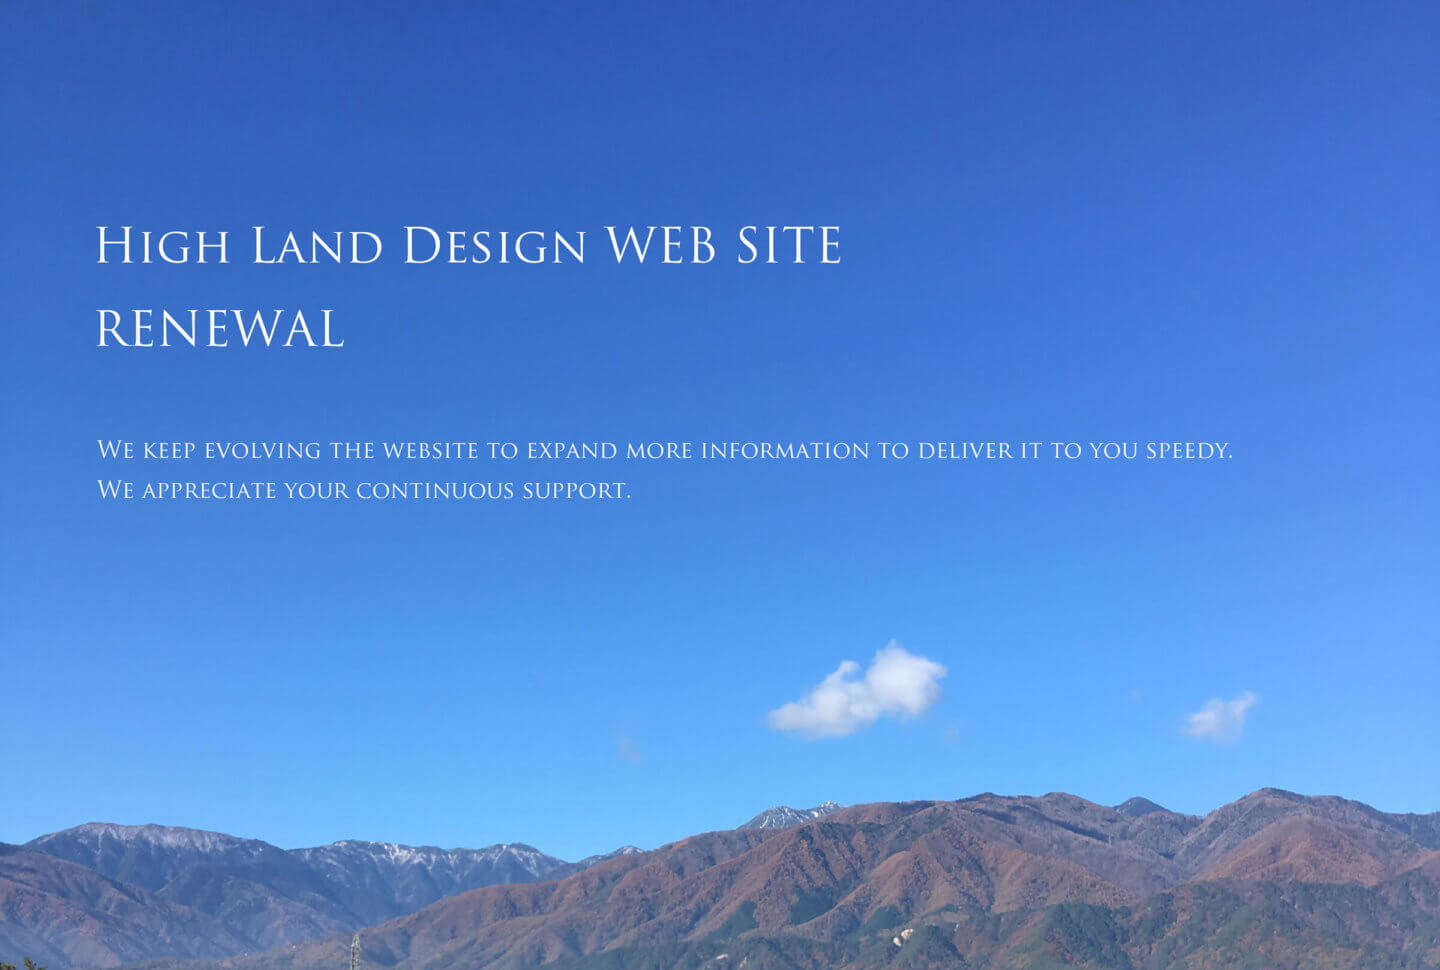 High Land Design Website renewal